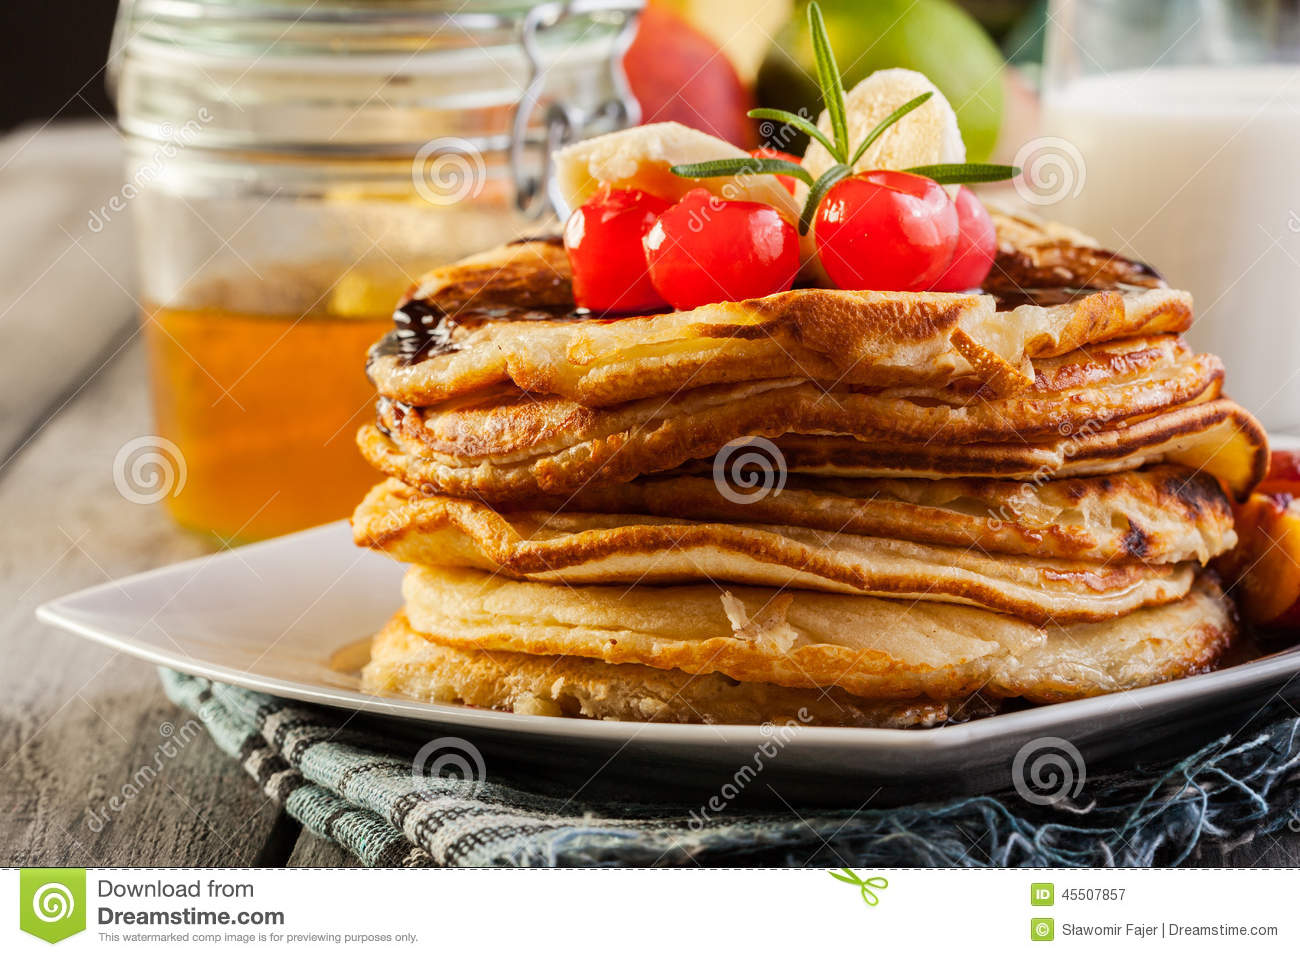 how to make fruit sauce for pancakes